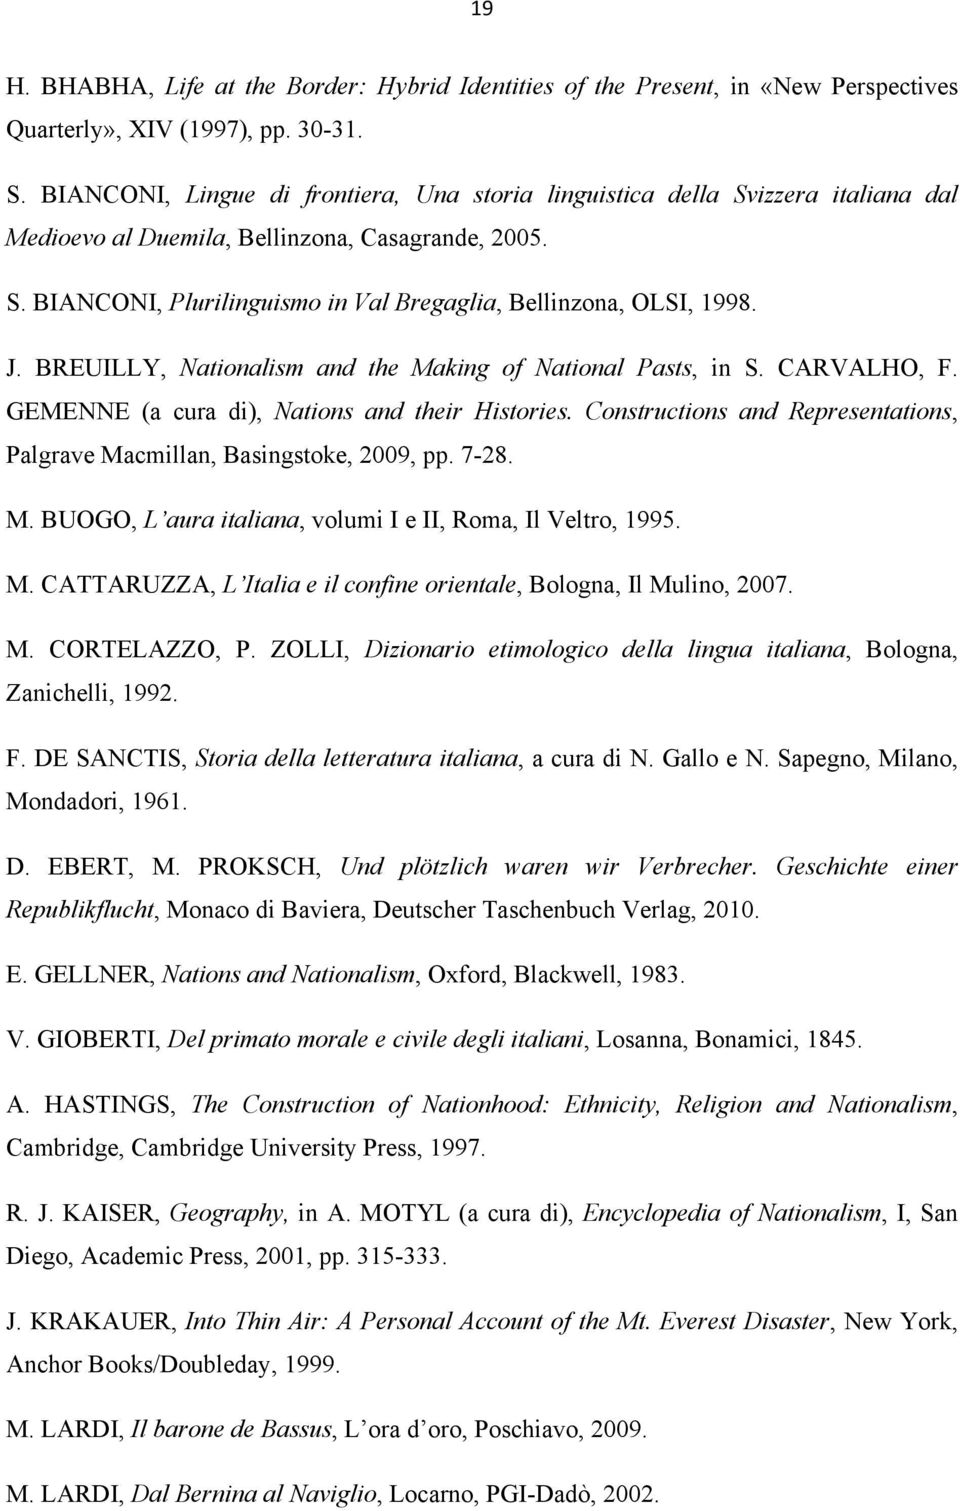 J. BREUILLY, Nationalism and the Making of National Pasts, in S. CARVALHO, F. GEMENNE (a cura di), Nations and their Histories.